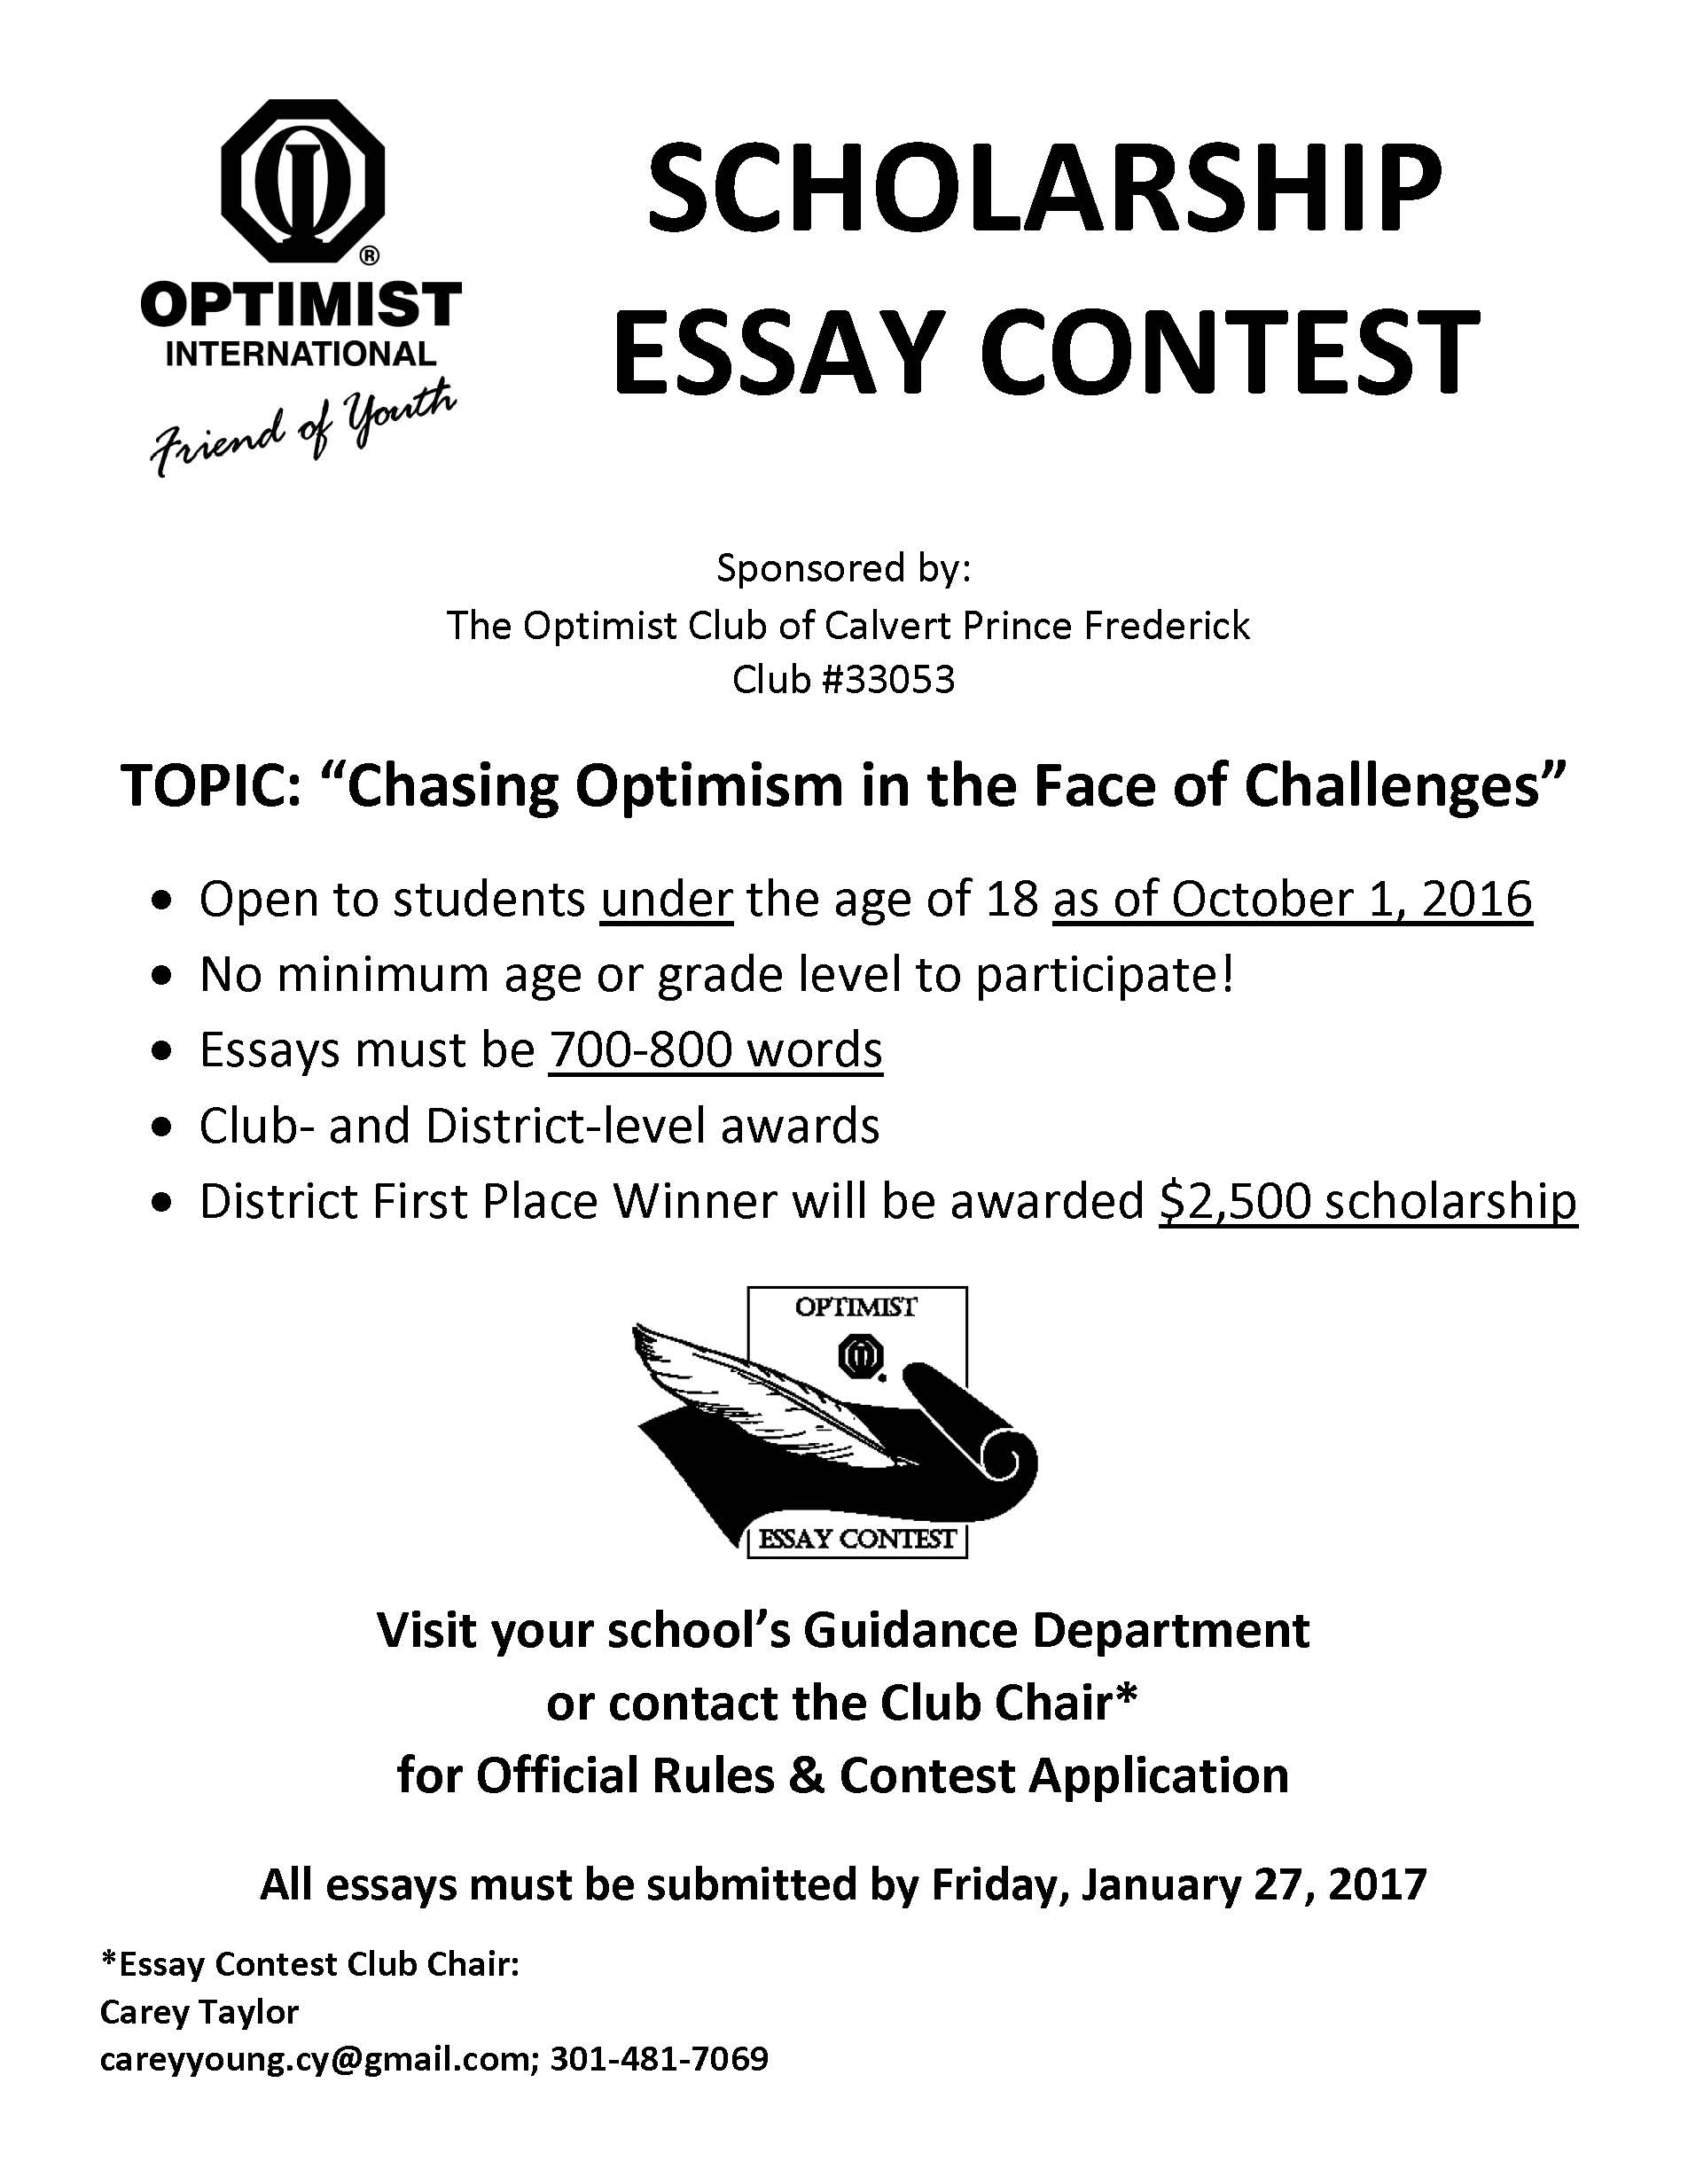 Loneliness Essay Programs Optimist Club Of Calvert Scholarship Essay Contest Flyer Click  Here Jpg Or Pdf Or Word A G Gardiner Essays also Nursing School Essay Samples  Word Essay Word Essay Creative Studies Final Assignment Hearts  Martin Luther King Essay Example